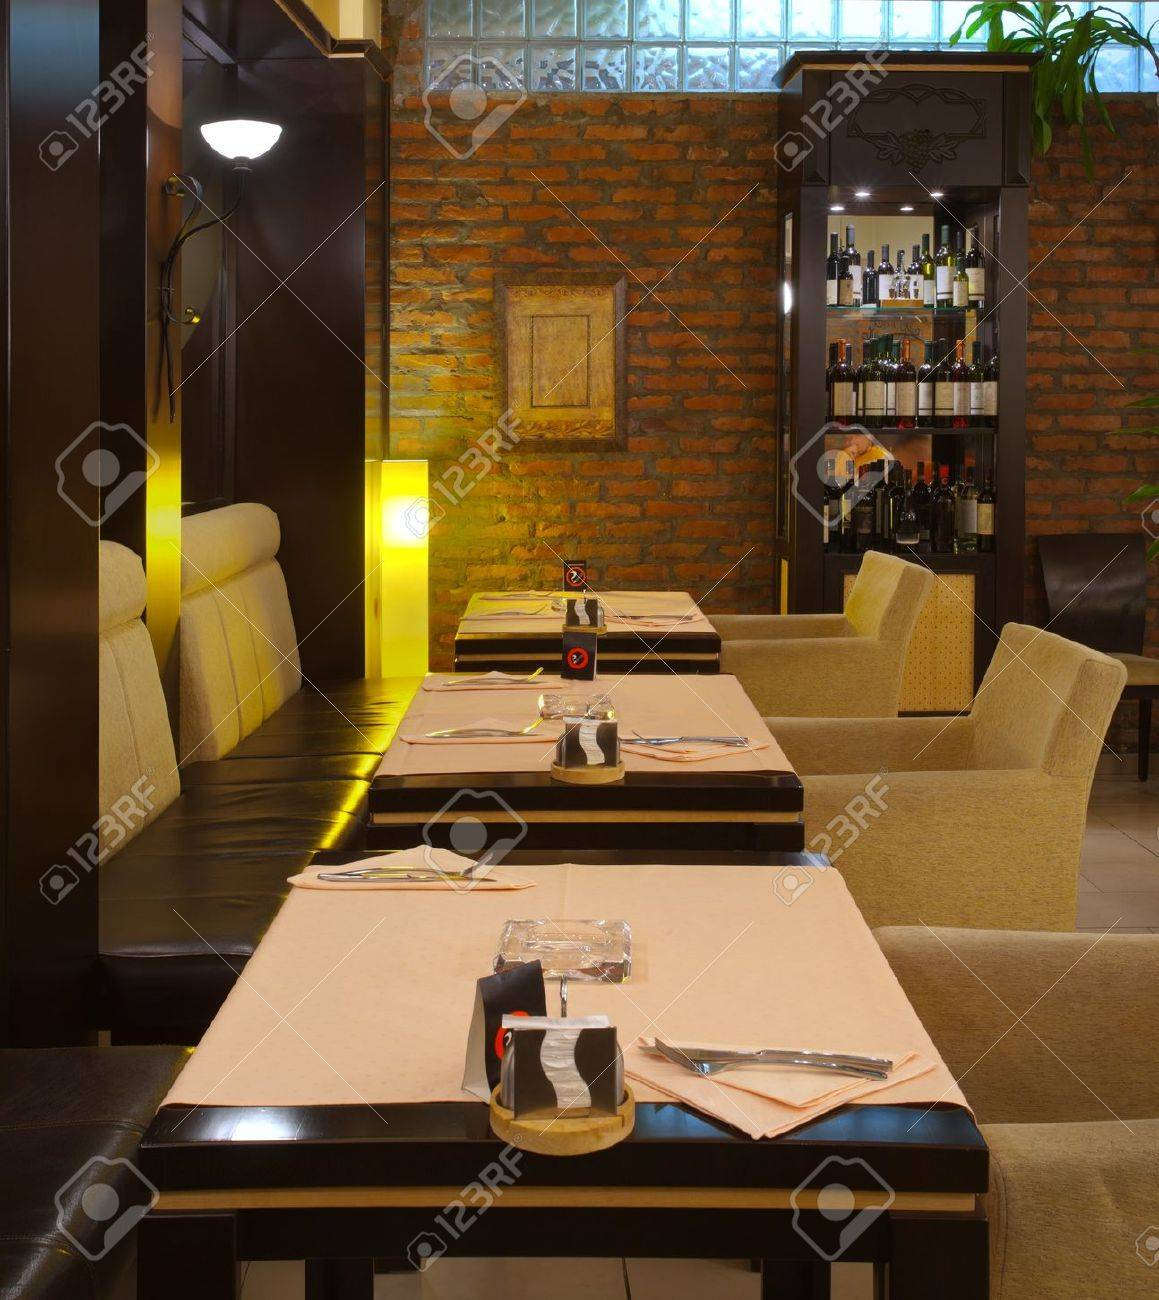 Tables, chairs, brick wall and lighting equipment of a restaurant. Stock Photo - 9009626